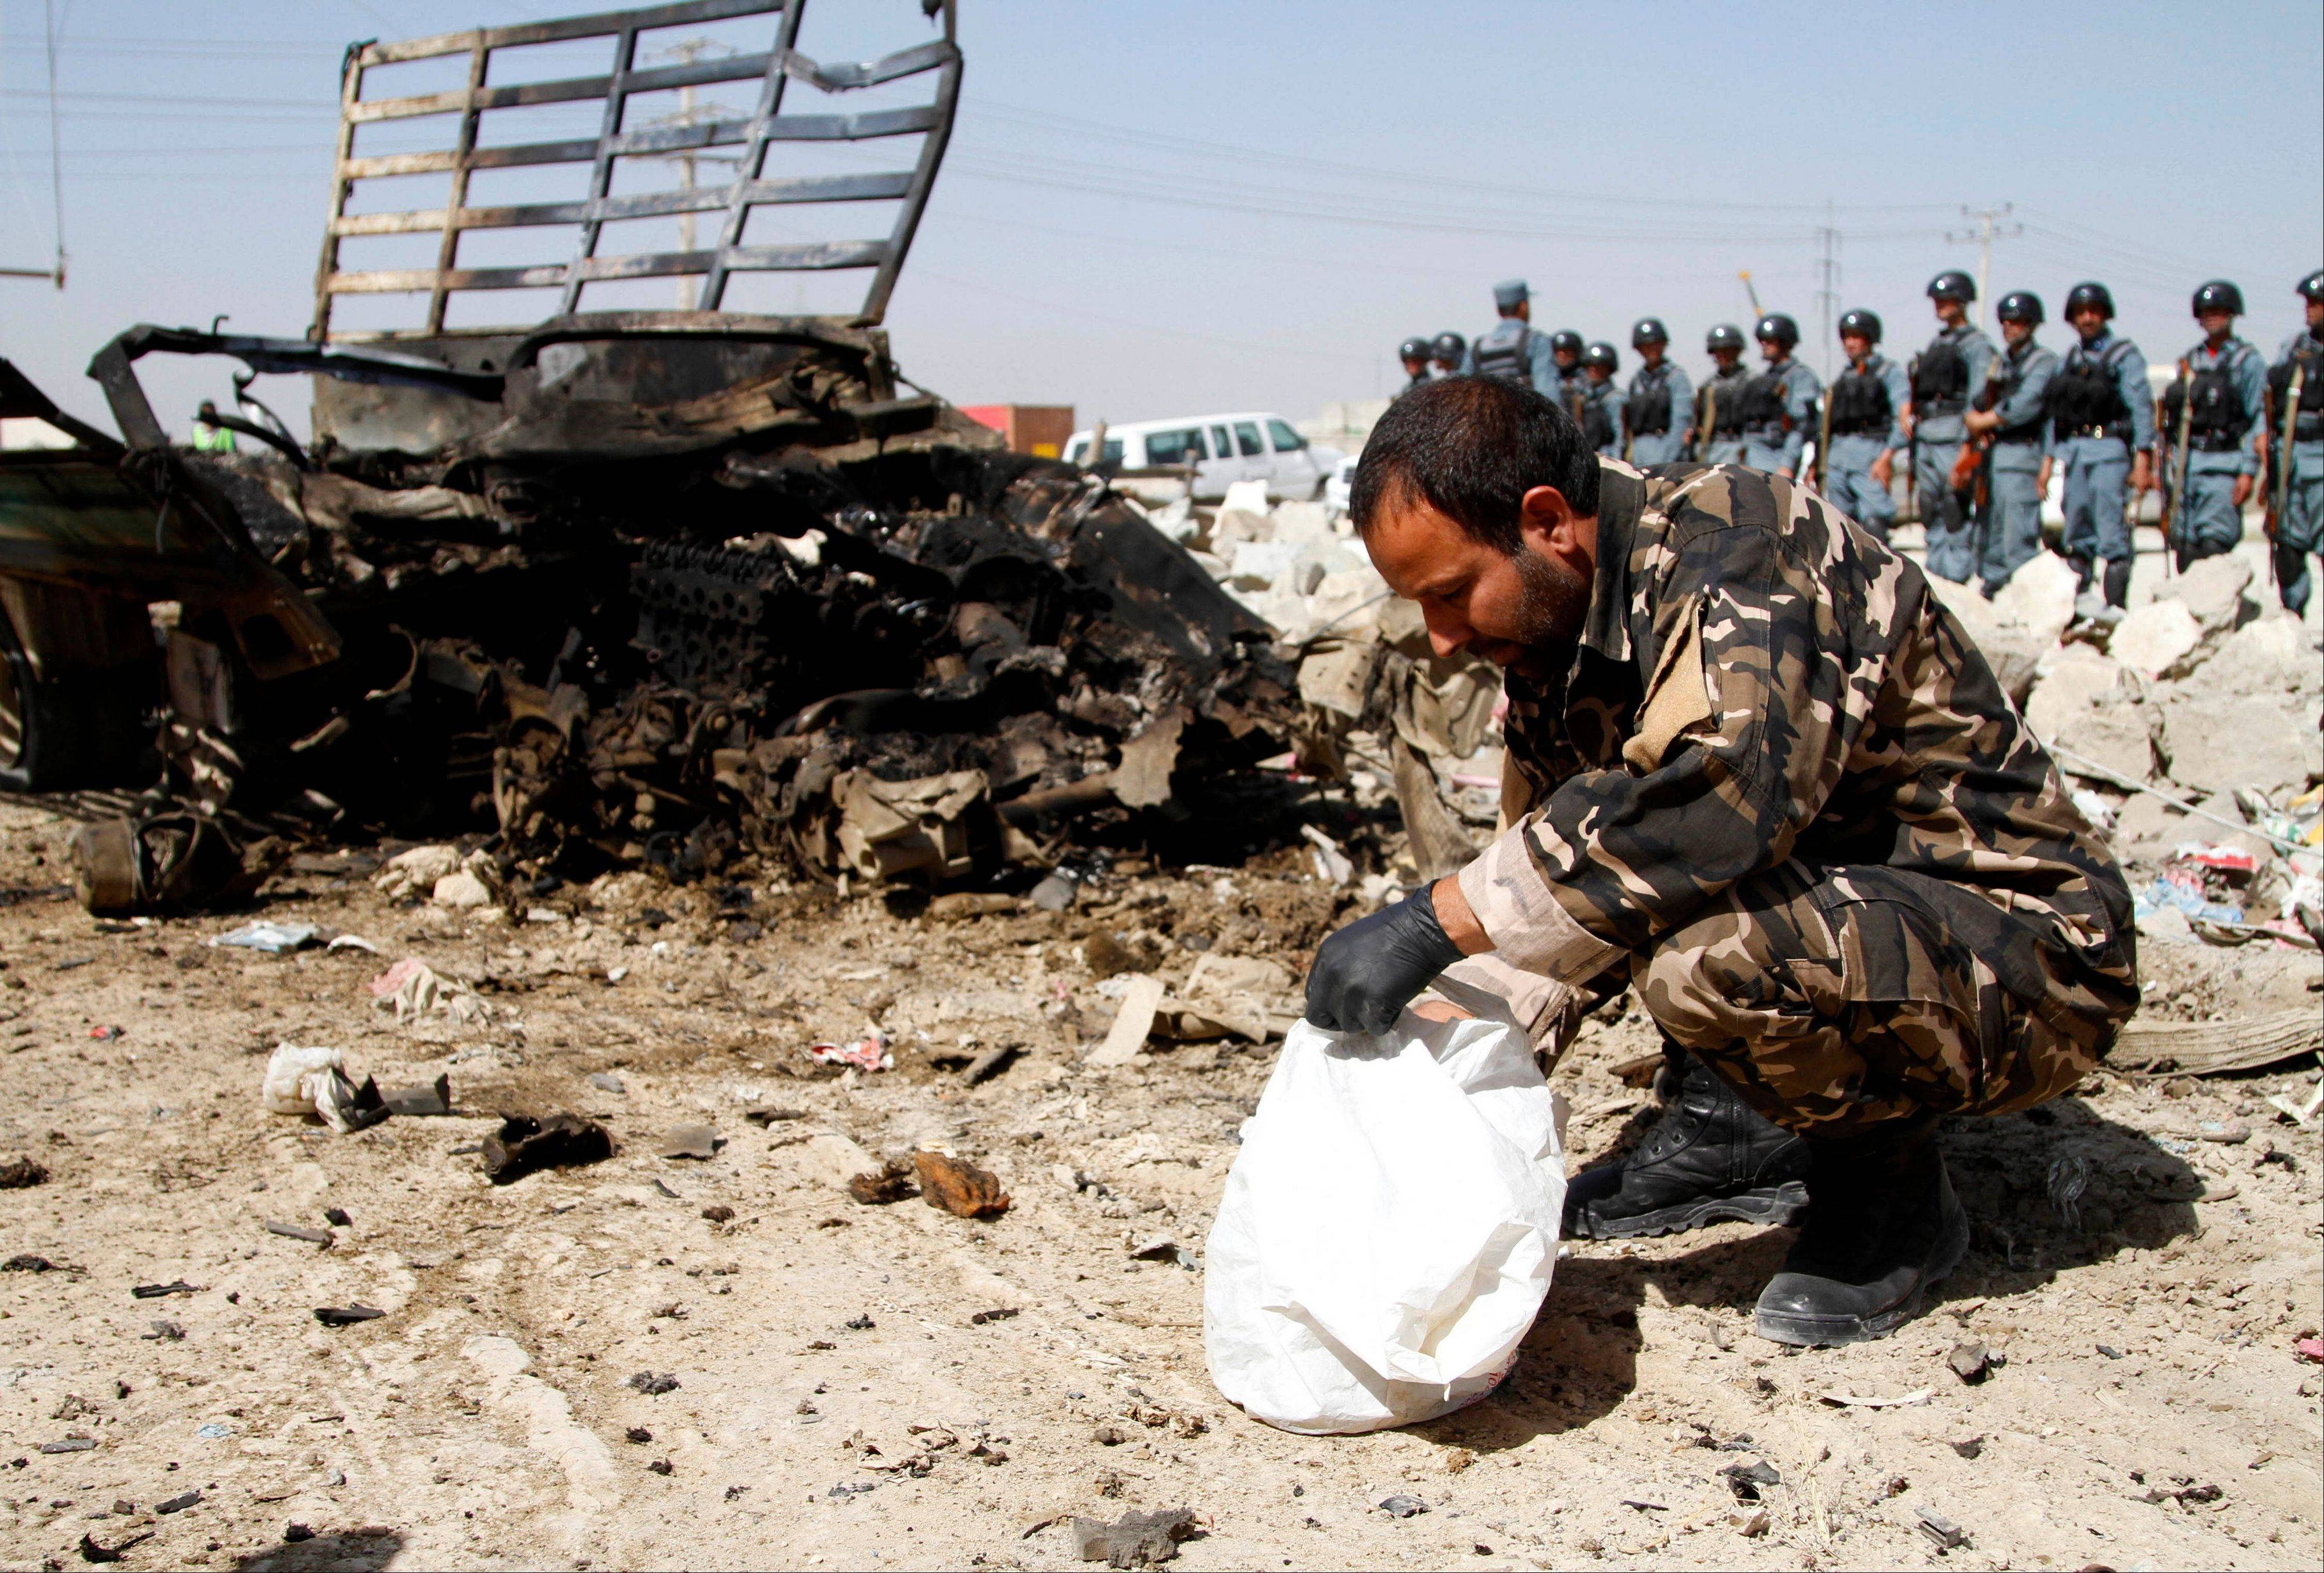 Afghan security and intelligence official inspects wreckage at the site of a suicide attack near Kabul military airport in Kabul, Afghanistan, Monday. Seven heavily armed Taliban insurgents launched a pre-dawn attack near Afghanistan's main airport Monday, apparently targeting NATO's airport headquarters with rocket-propelled grenades, assault rifles and at least one large bomb. Two Afghan civilians were wounded and all the attackers were killed after an hours-long battle.